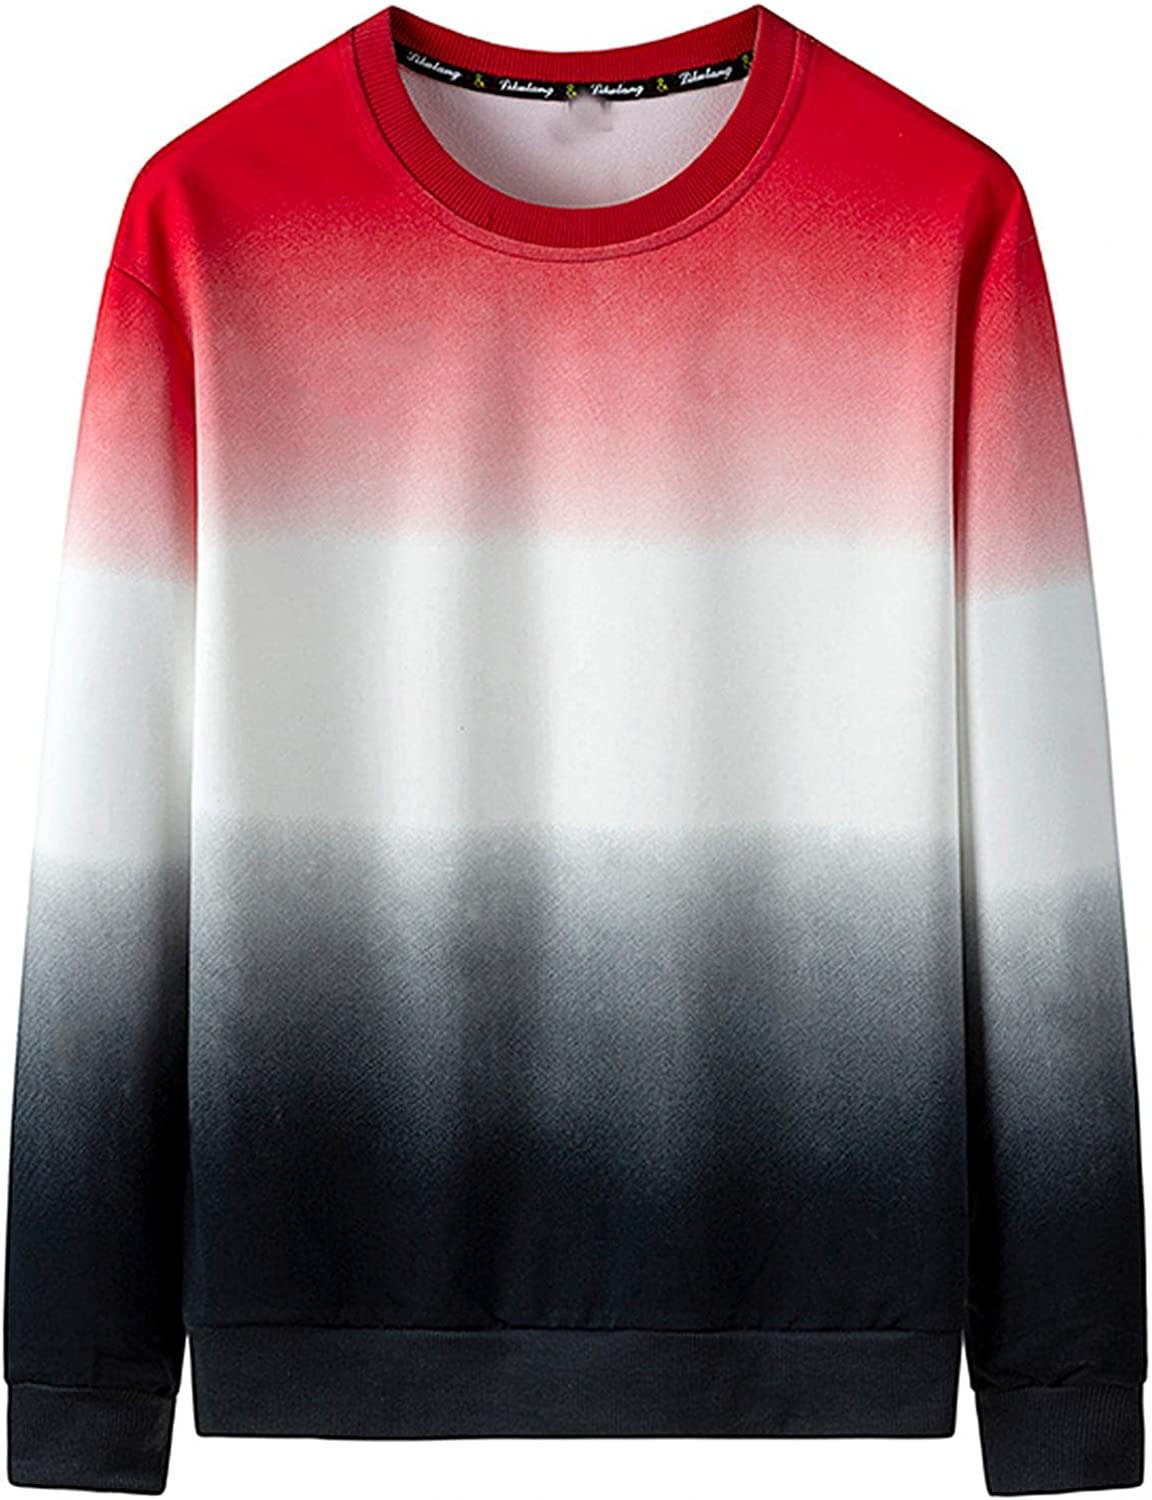 Mens Sweatshirts Crewneck College Casual Novelty Fashion Cozy Pullover Loose Straight Sports Fan Clothing Adult Unisex